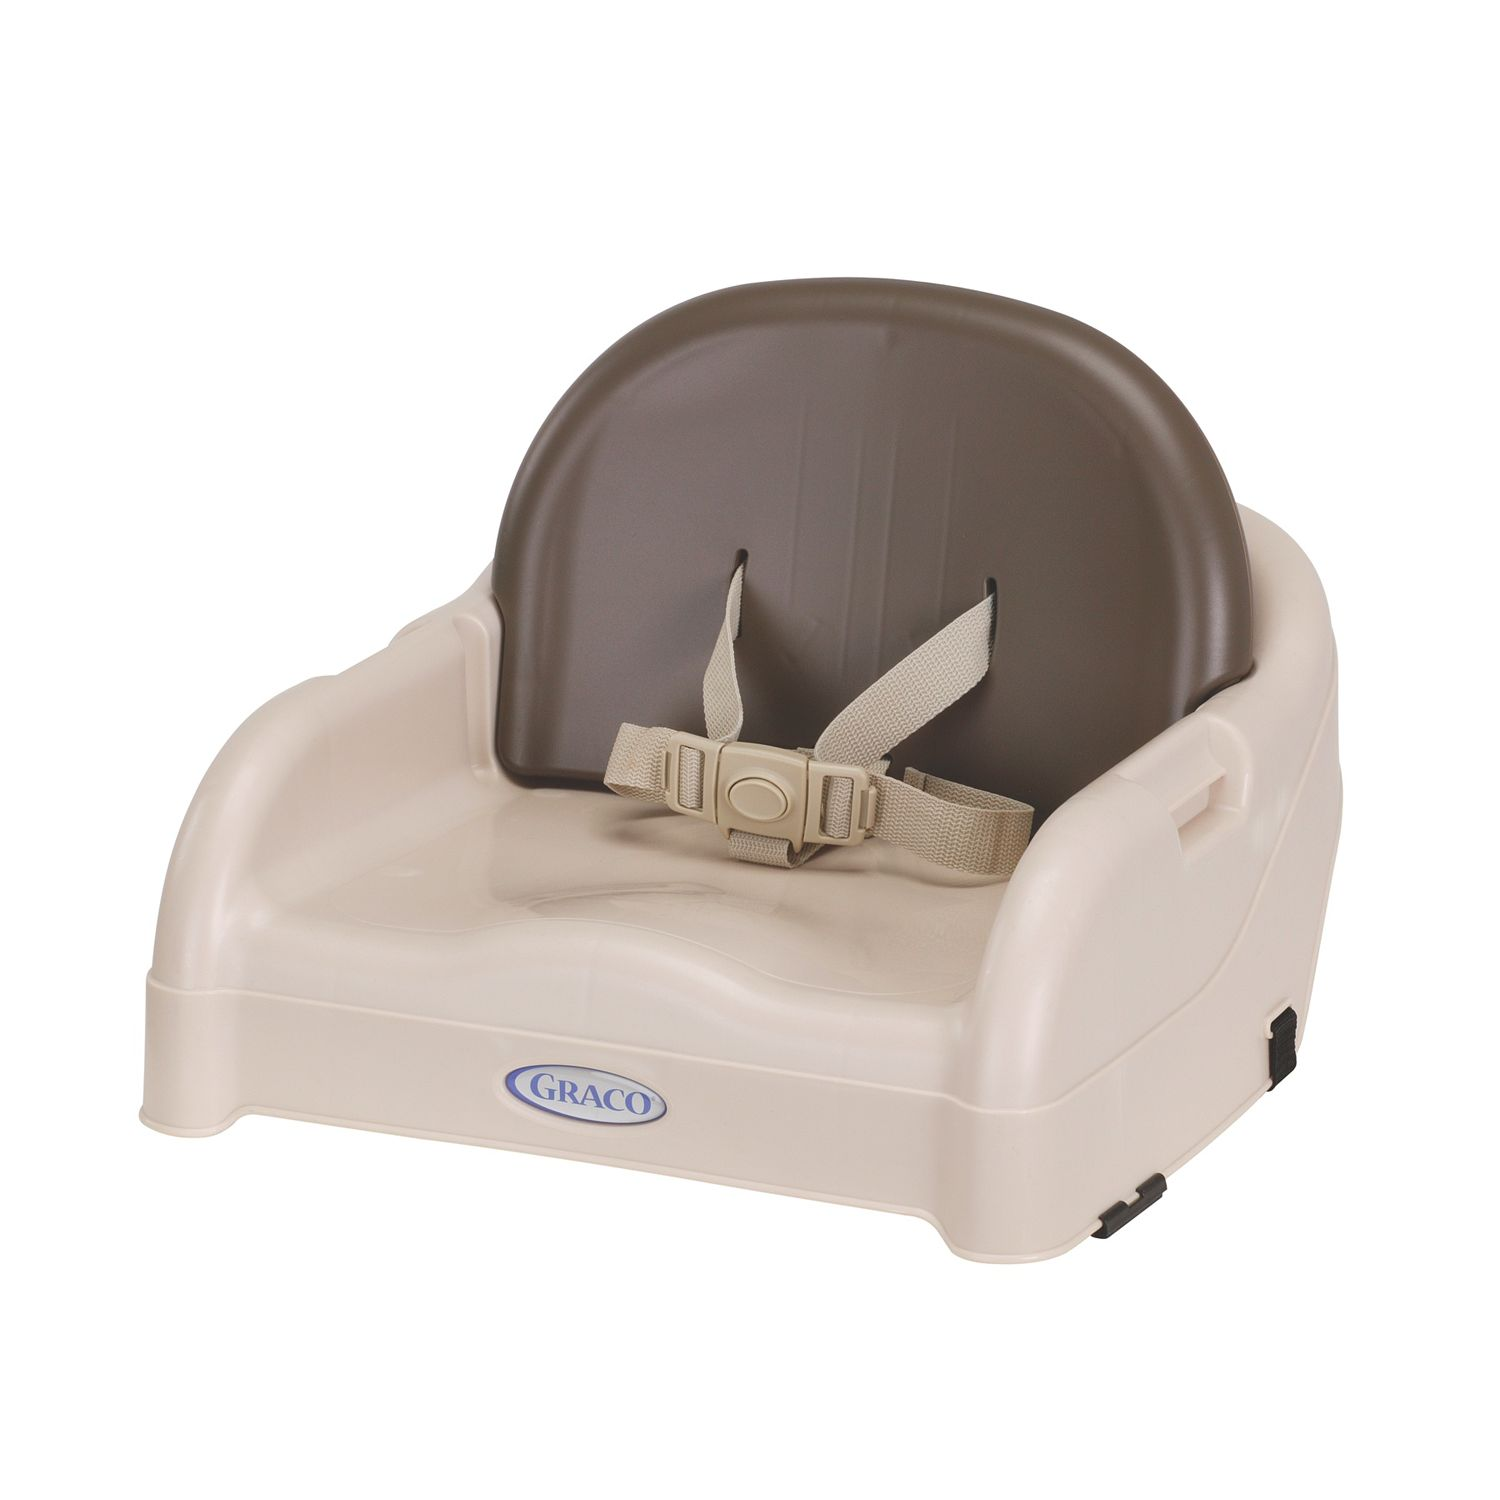 Marvelous Graco Blossom Booster Seat Amazing Design